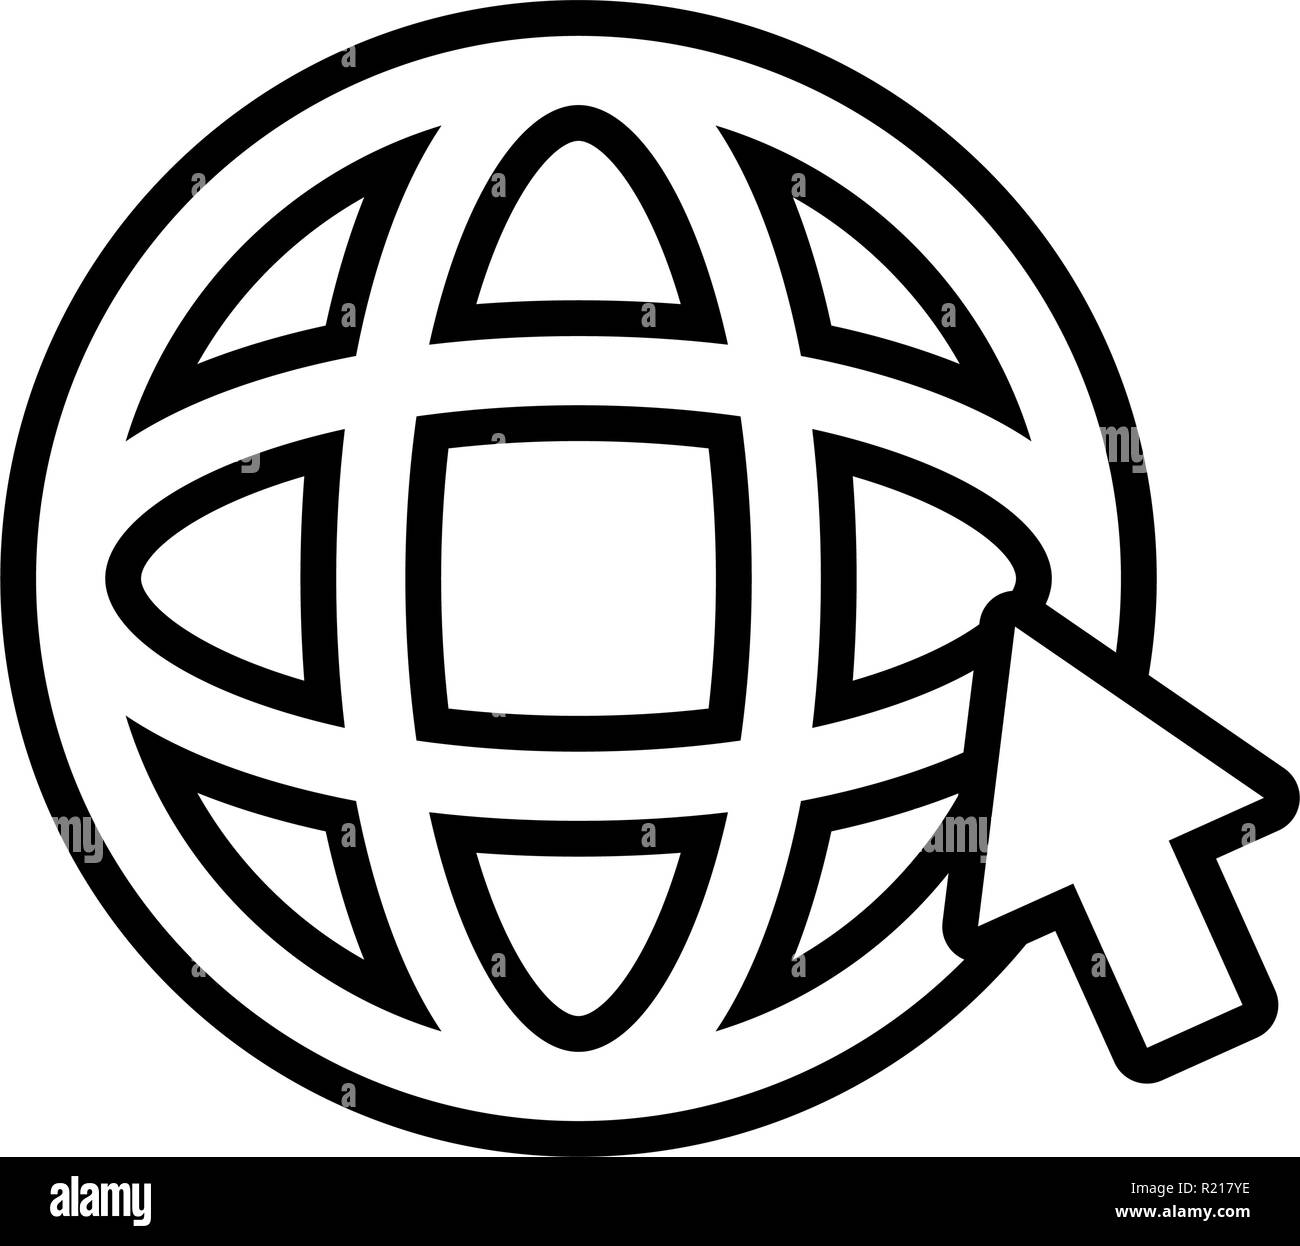 sphere planet browser icon vector illustration design - Stock Image